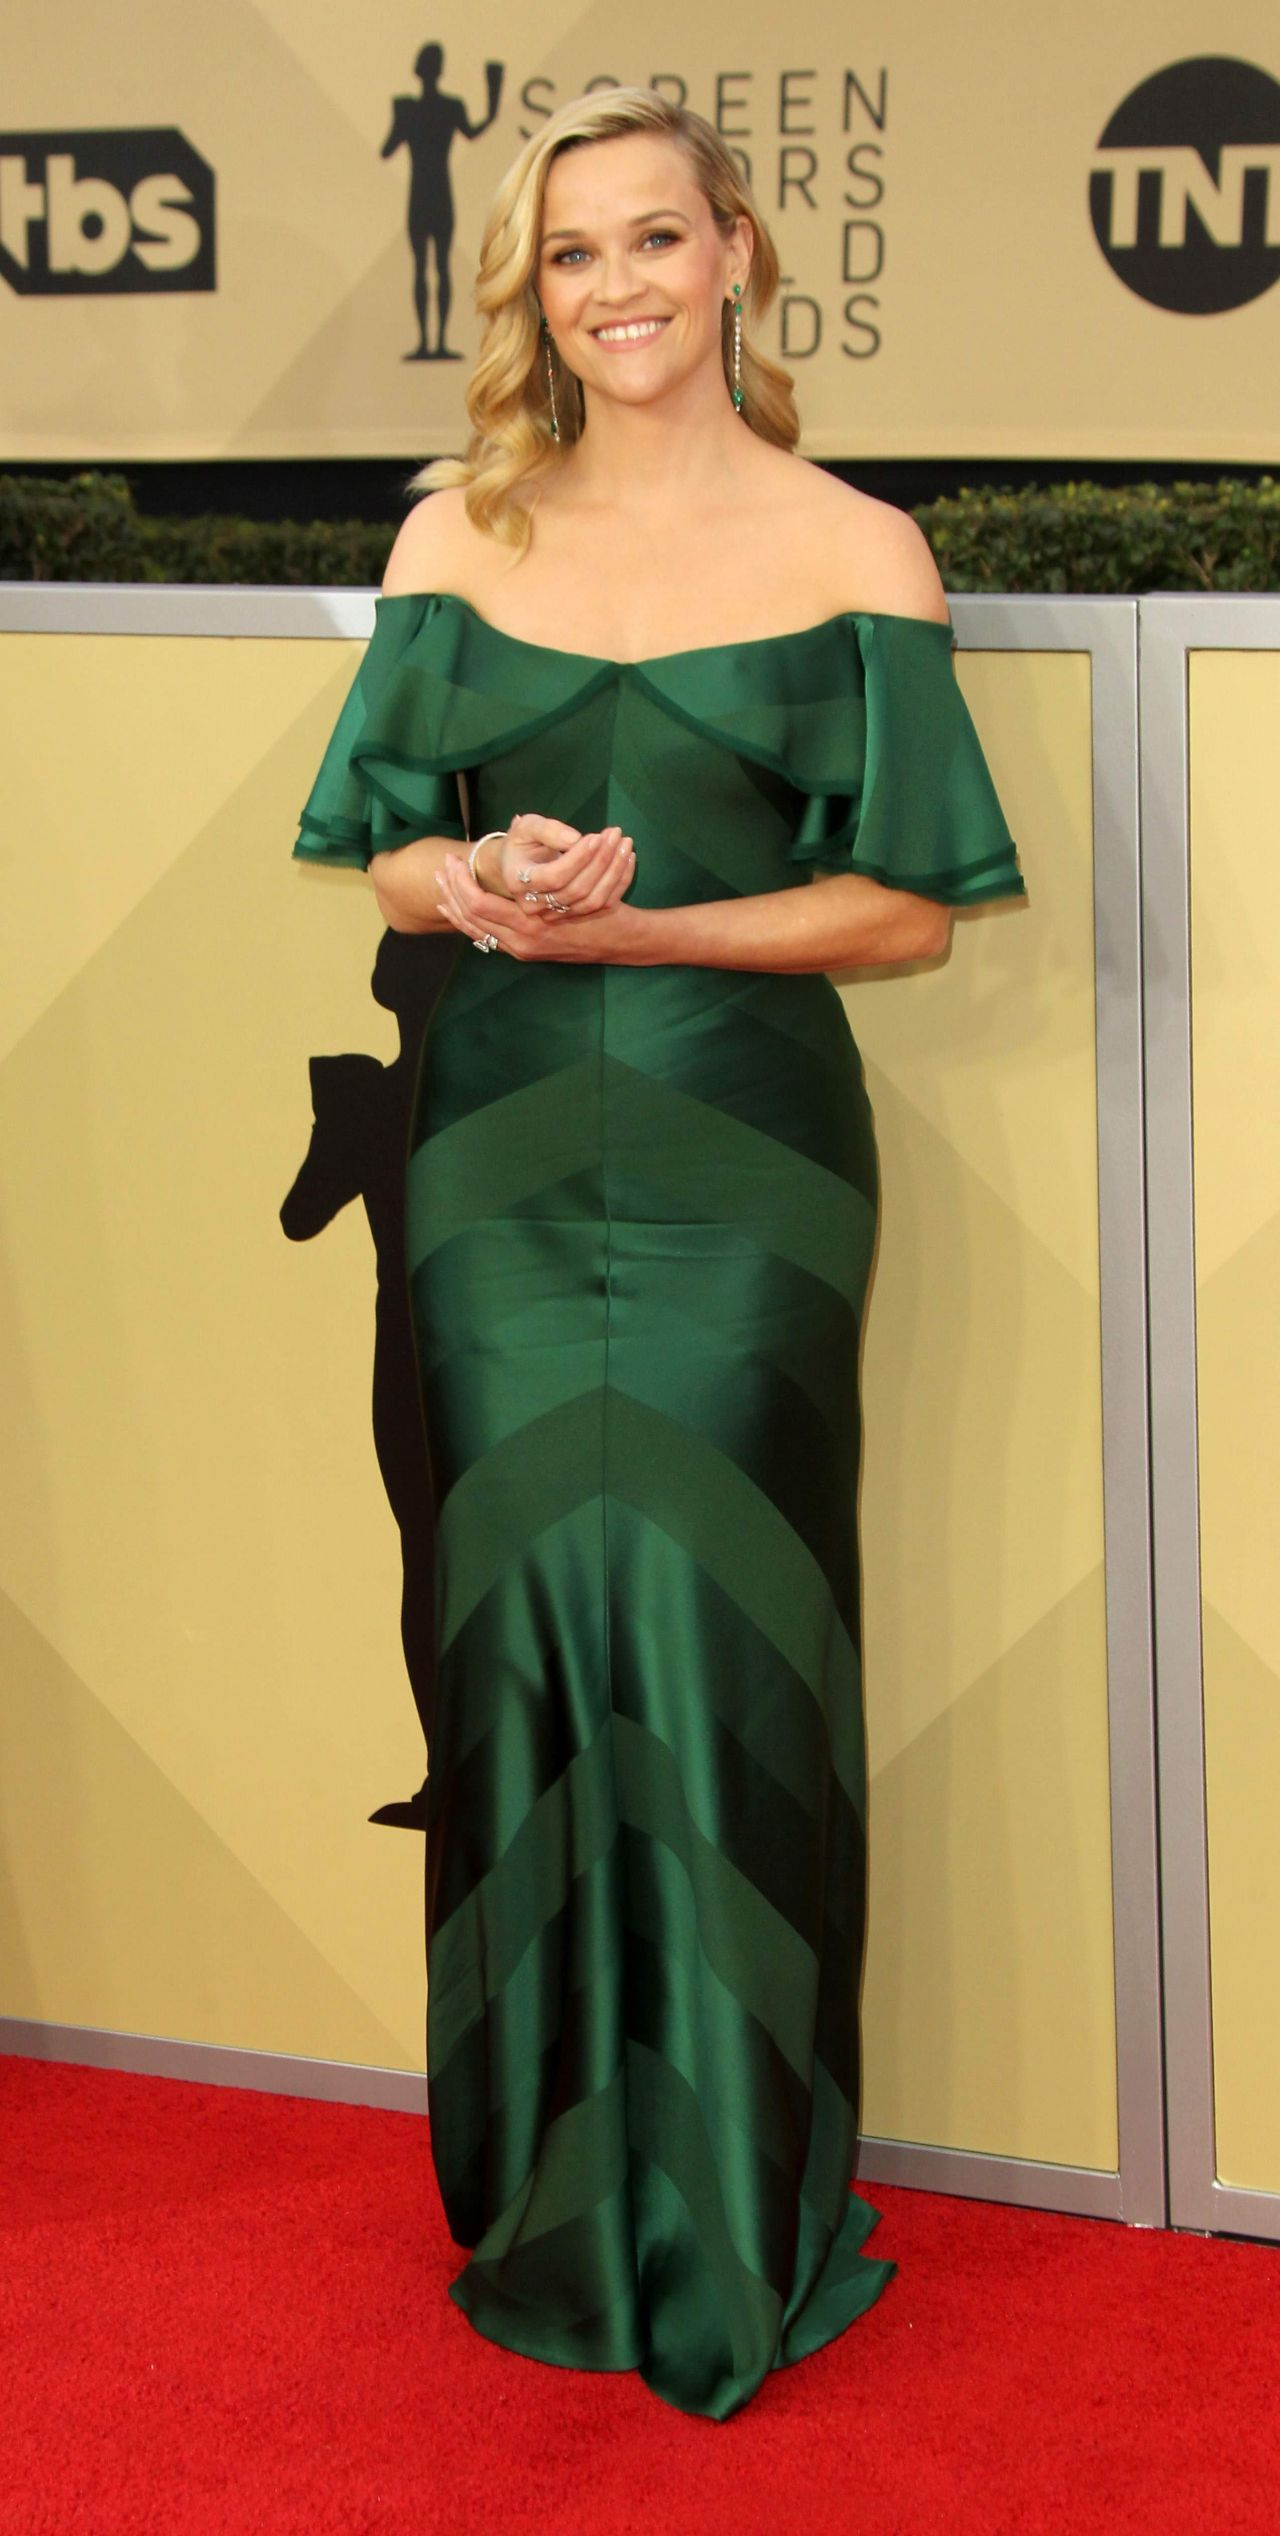 http://celebmafia.com/wp-content/uploads/2018/01/reese-witherspoon-2018-sag-awards-in-la-6.jpg